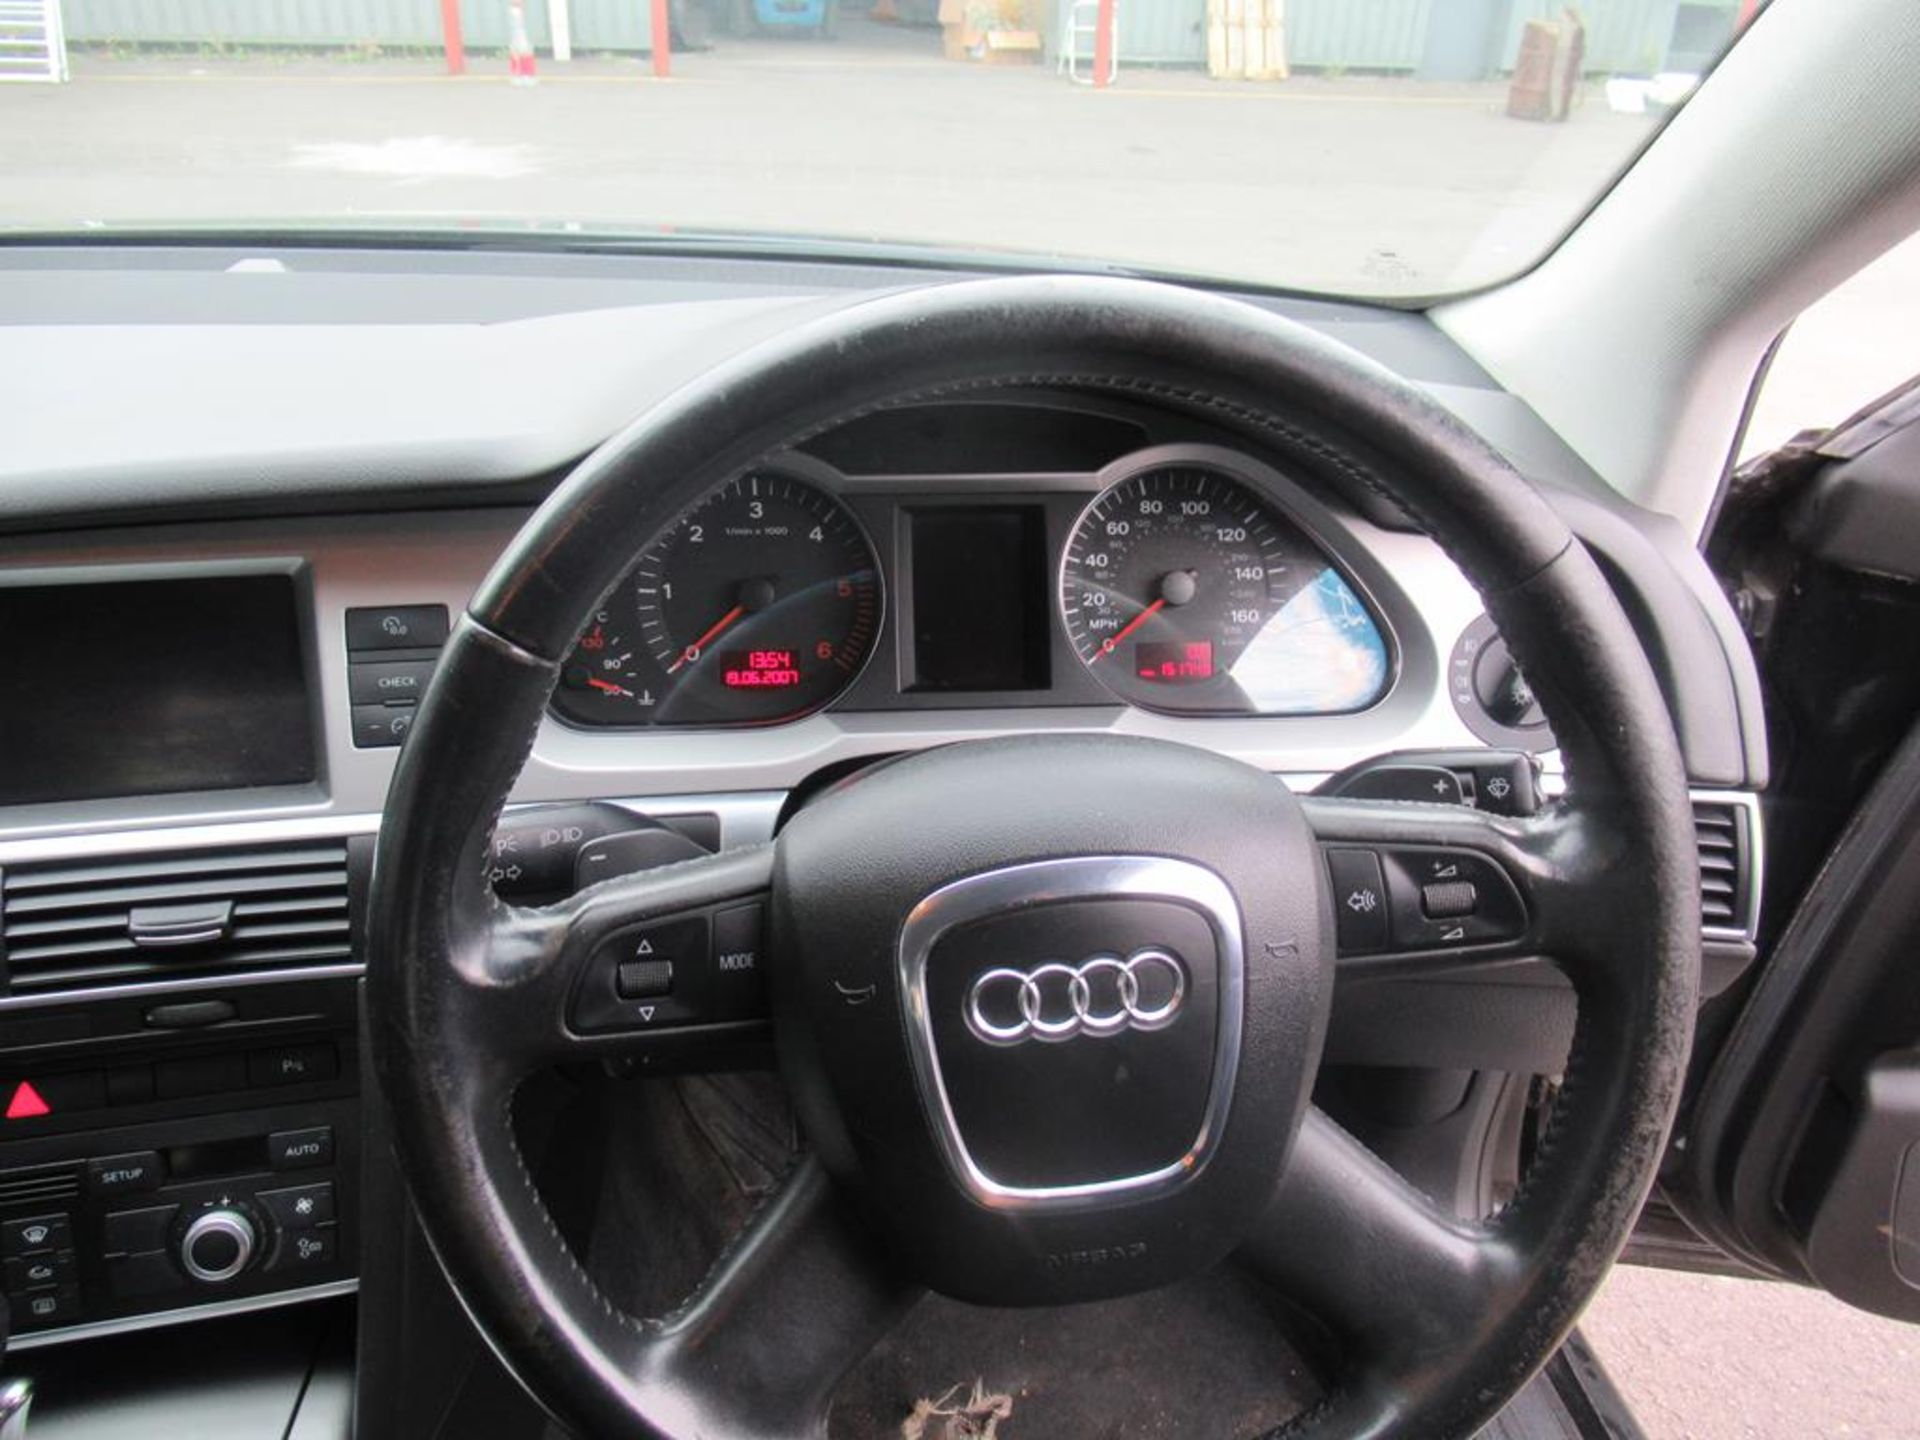 Audi A6 2.7TDI automatic with SatNav and bluetooth - Image 13 of 16